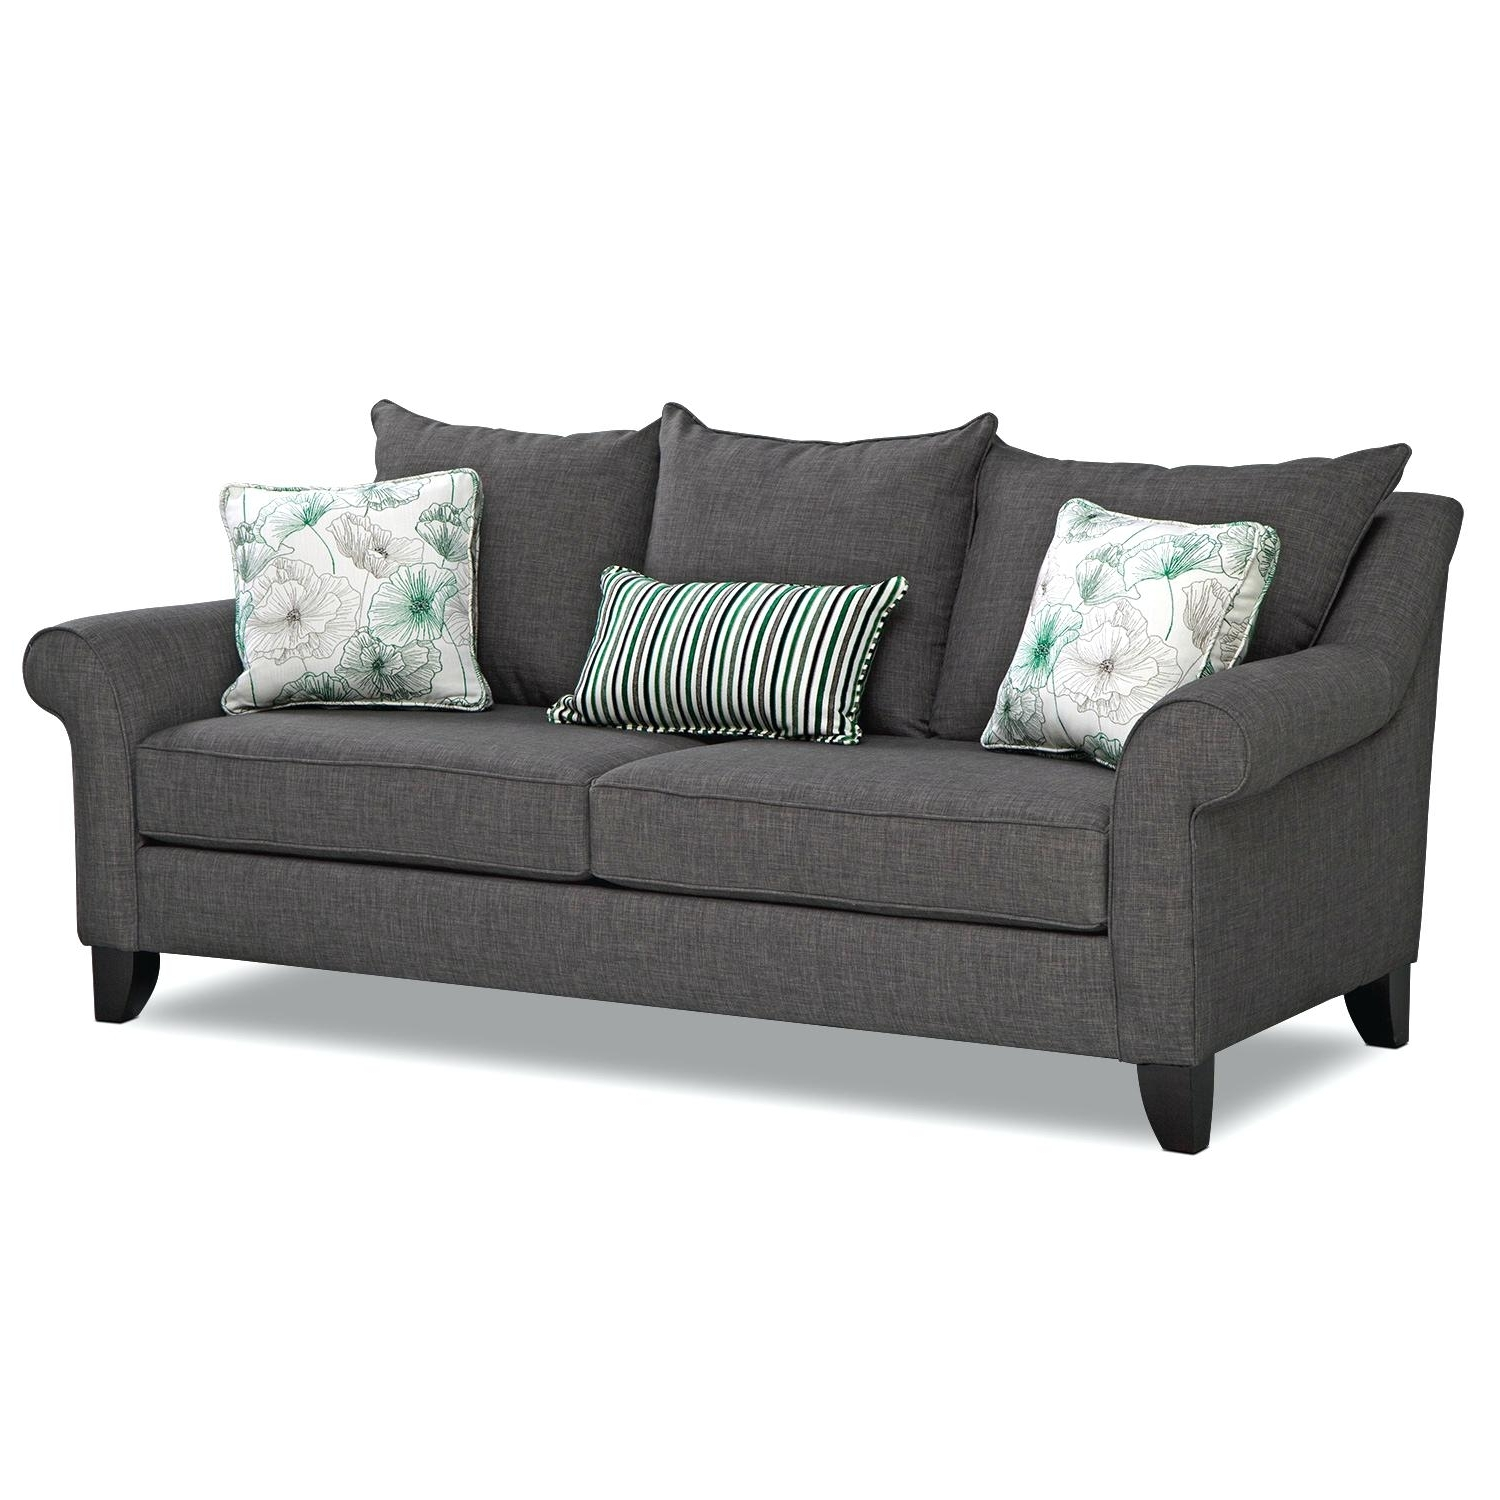 City Furniture Sofa Beds – 4Parkar For Most Recent City Sofa Beds (View 5 of 20)